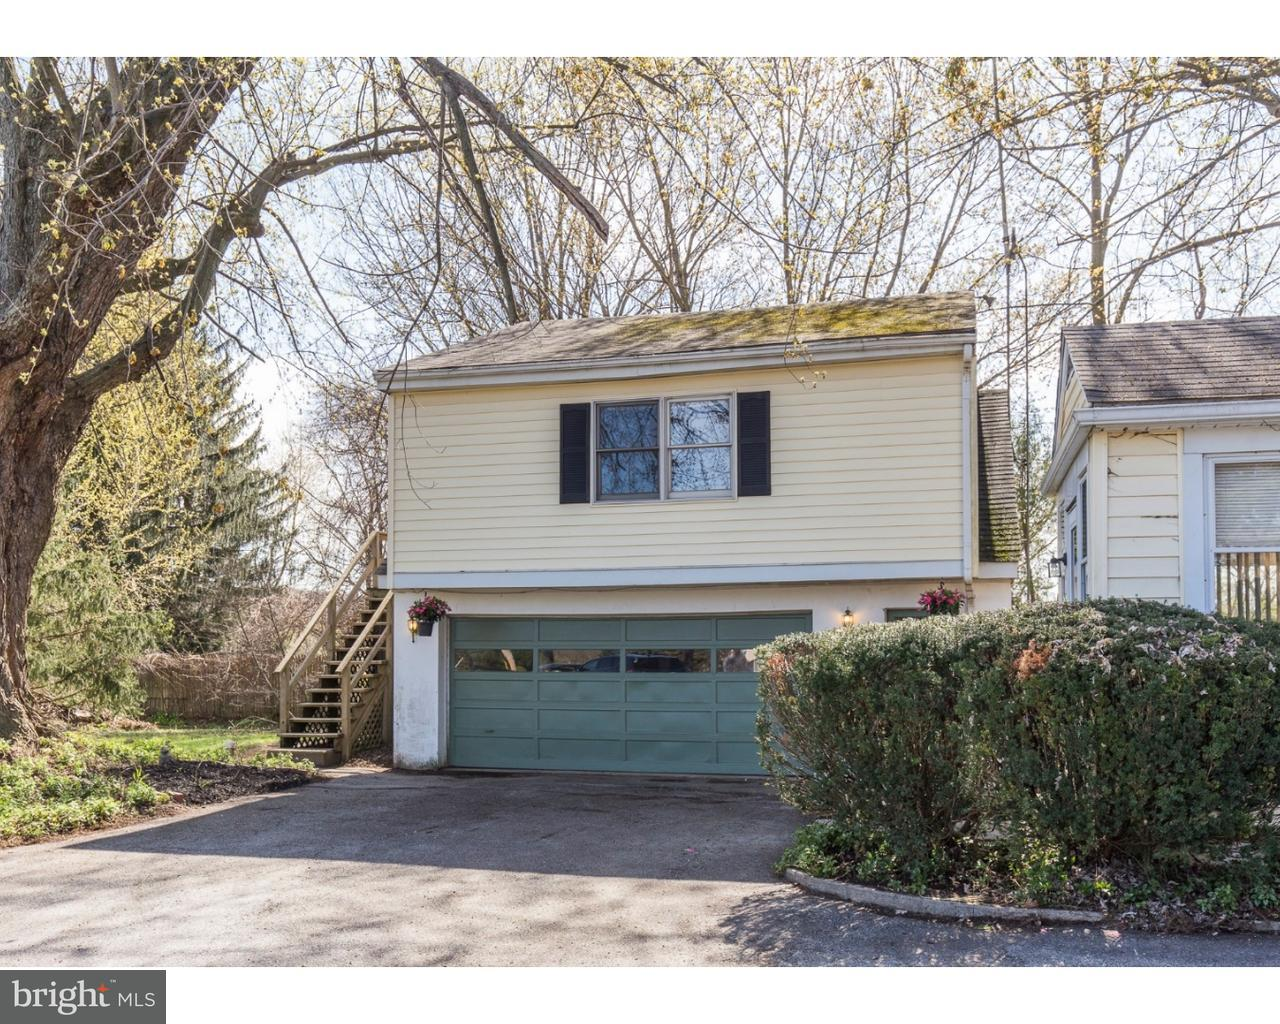 1931 VALLEY RD, POMEROY - Listed at $250,000, POMEROY